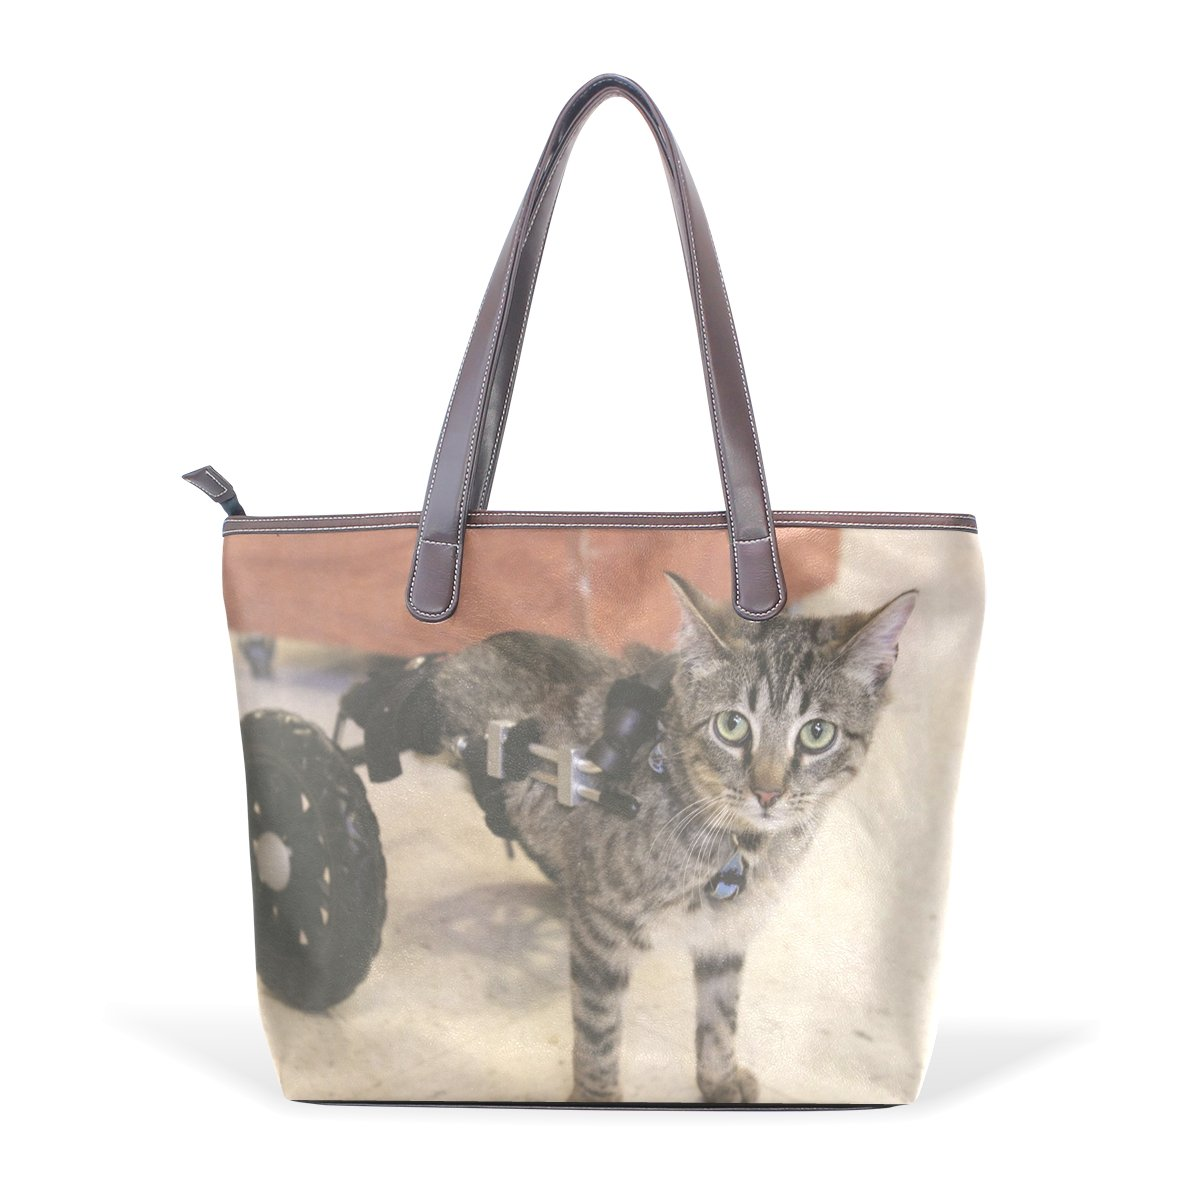 Mr.Weng Household Cat Bus Lady Handbag Tote Bag Zipper Shoulder Bag